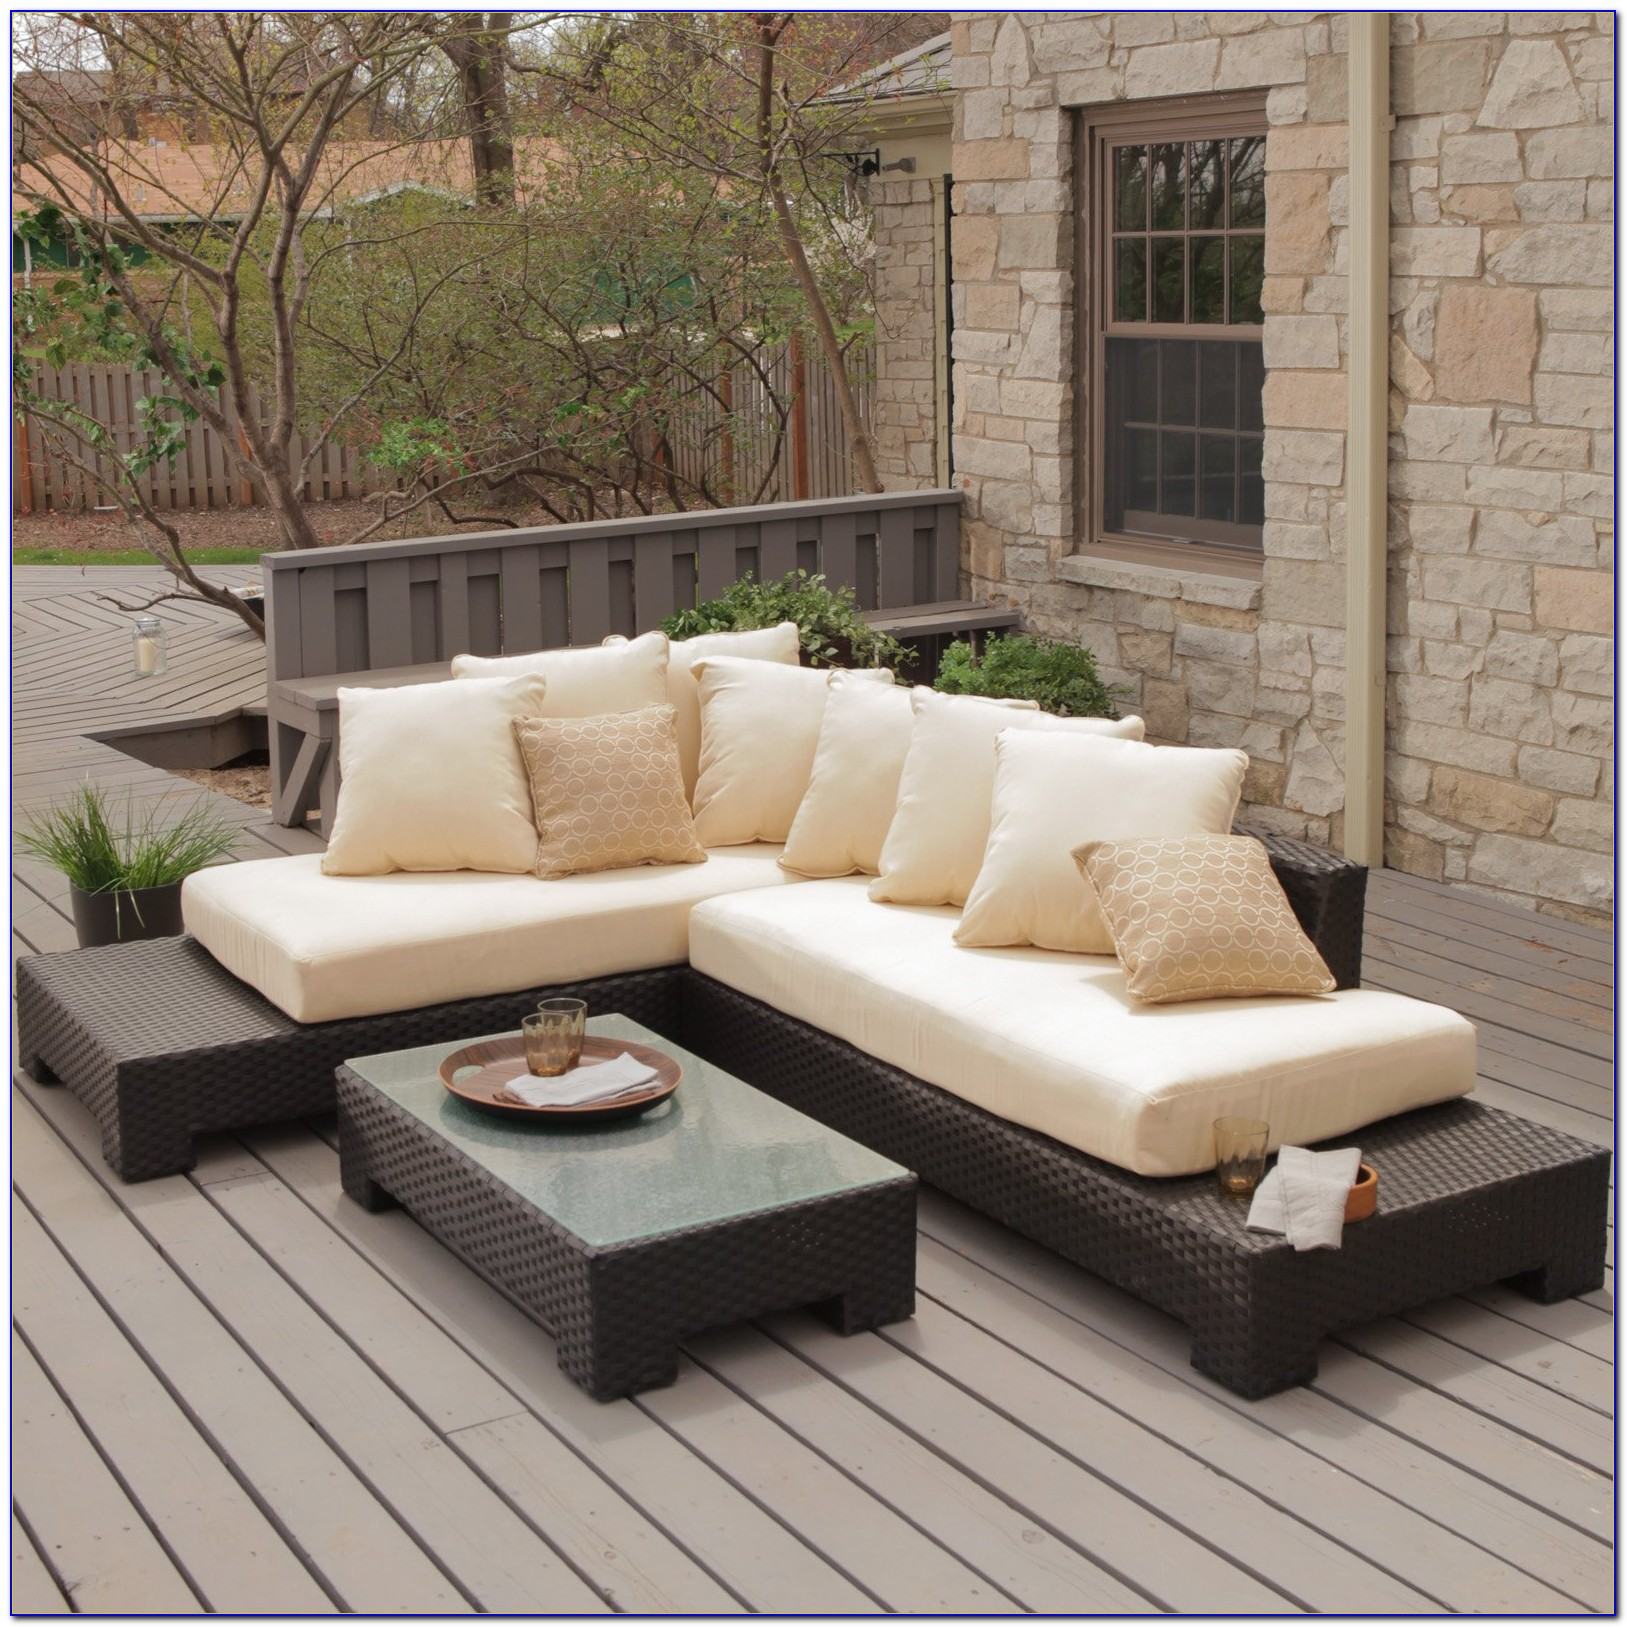 Sunbrella Patio Furniture Sams Club